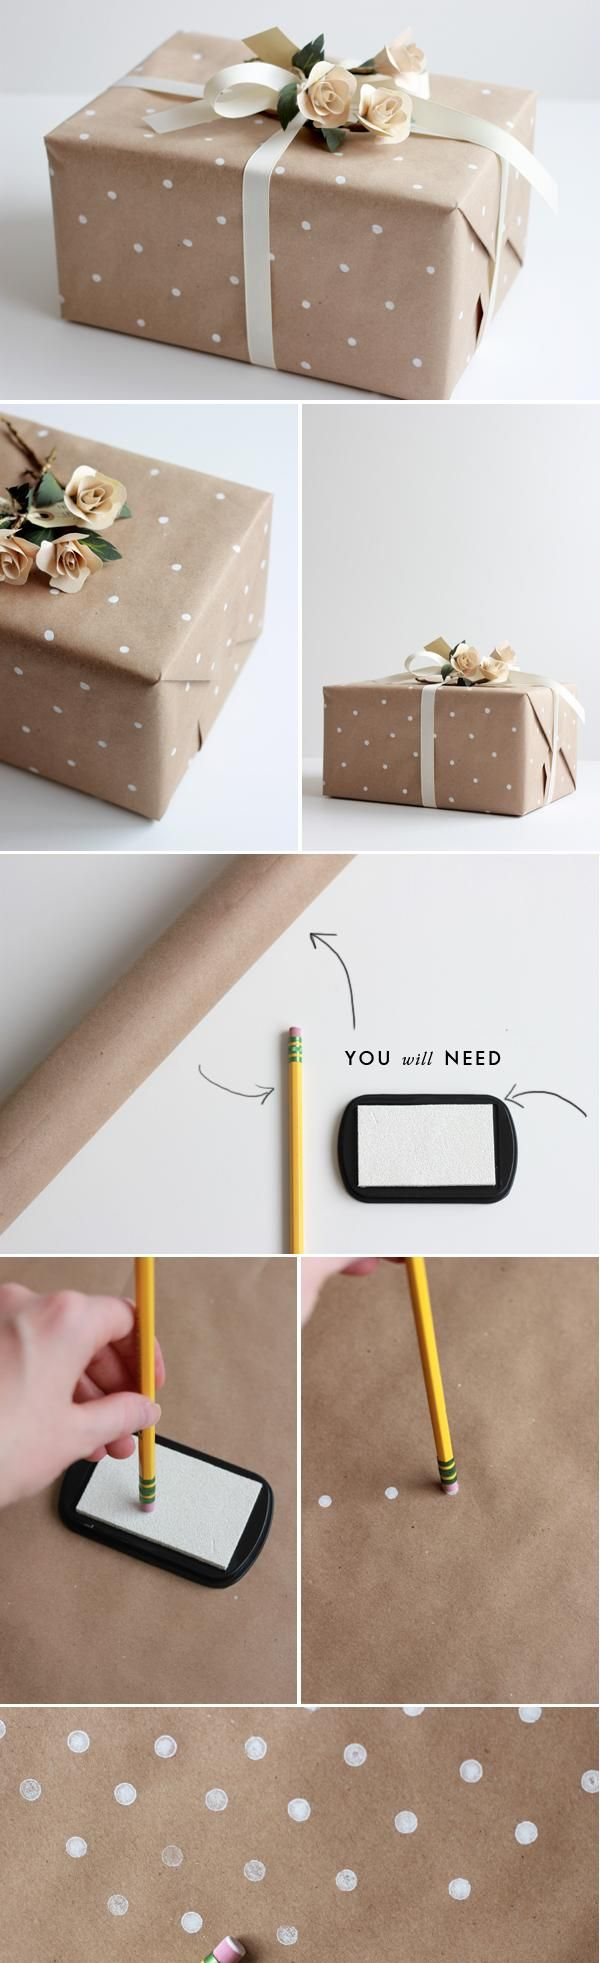 Polka dotted wrapping paper.